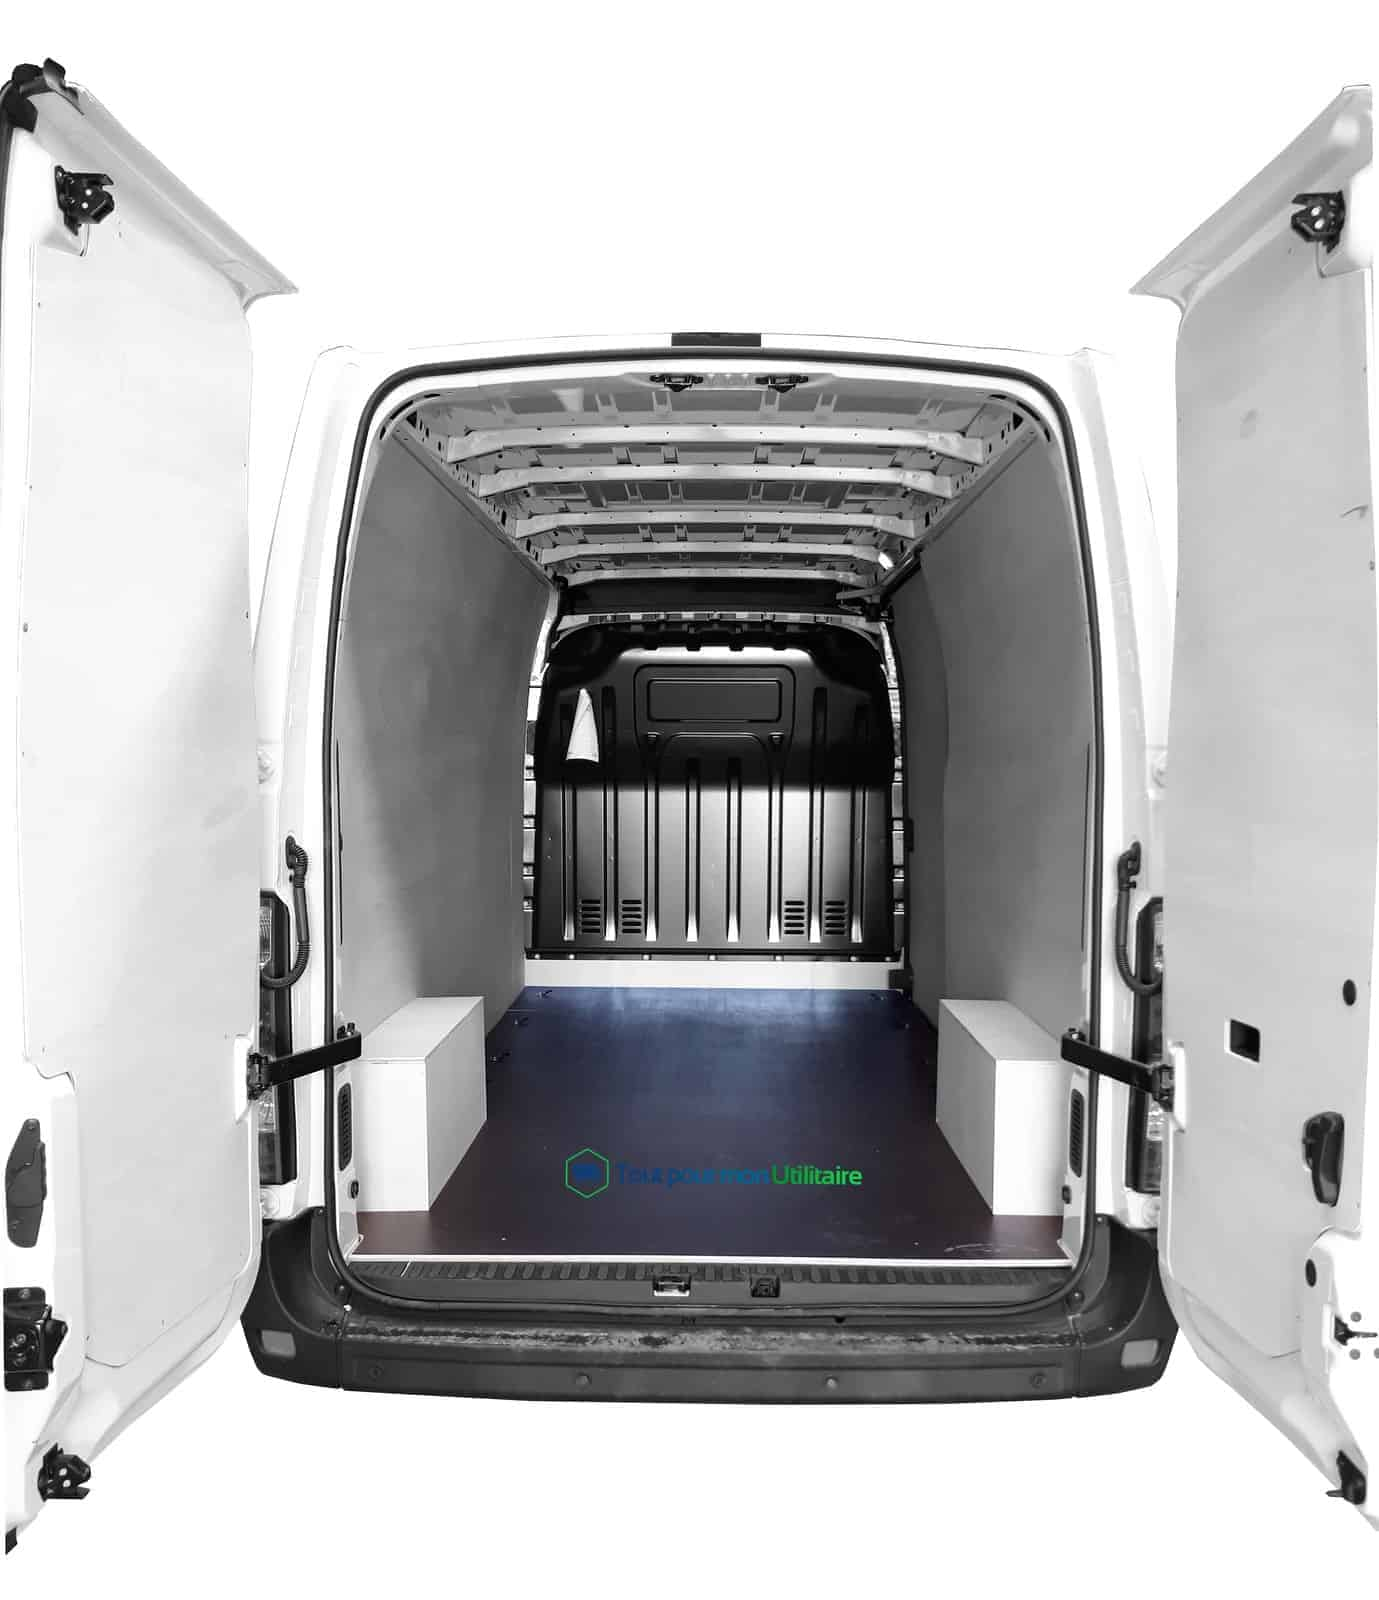 plancher de protection bois renault master l3 2 plc pour v hicule utilitaire. Black Bedroom Furniture Sets. Home Design Ideas